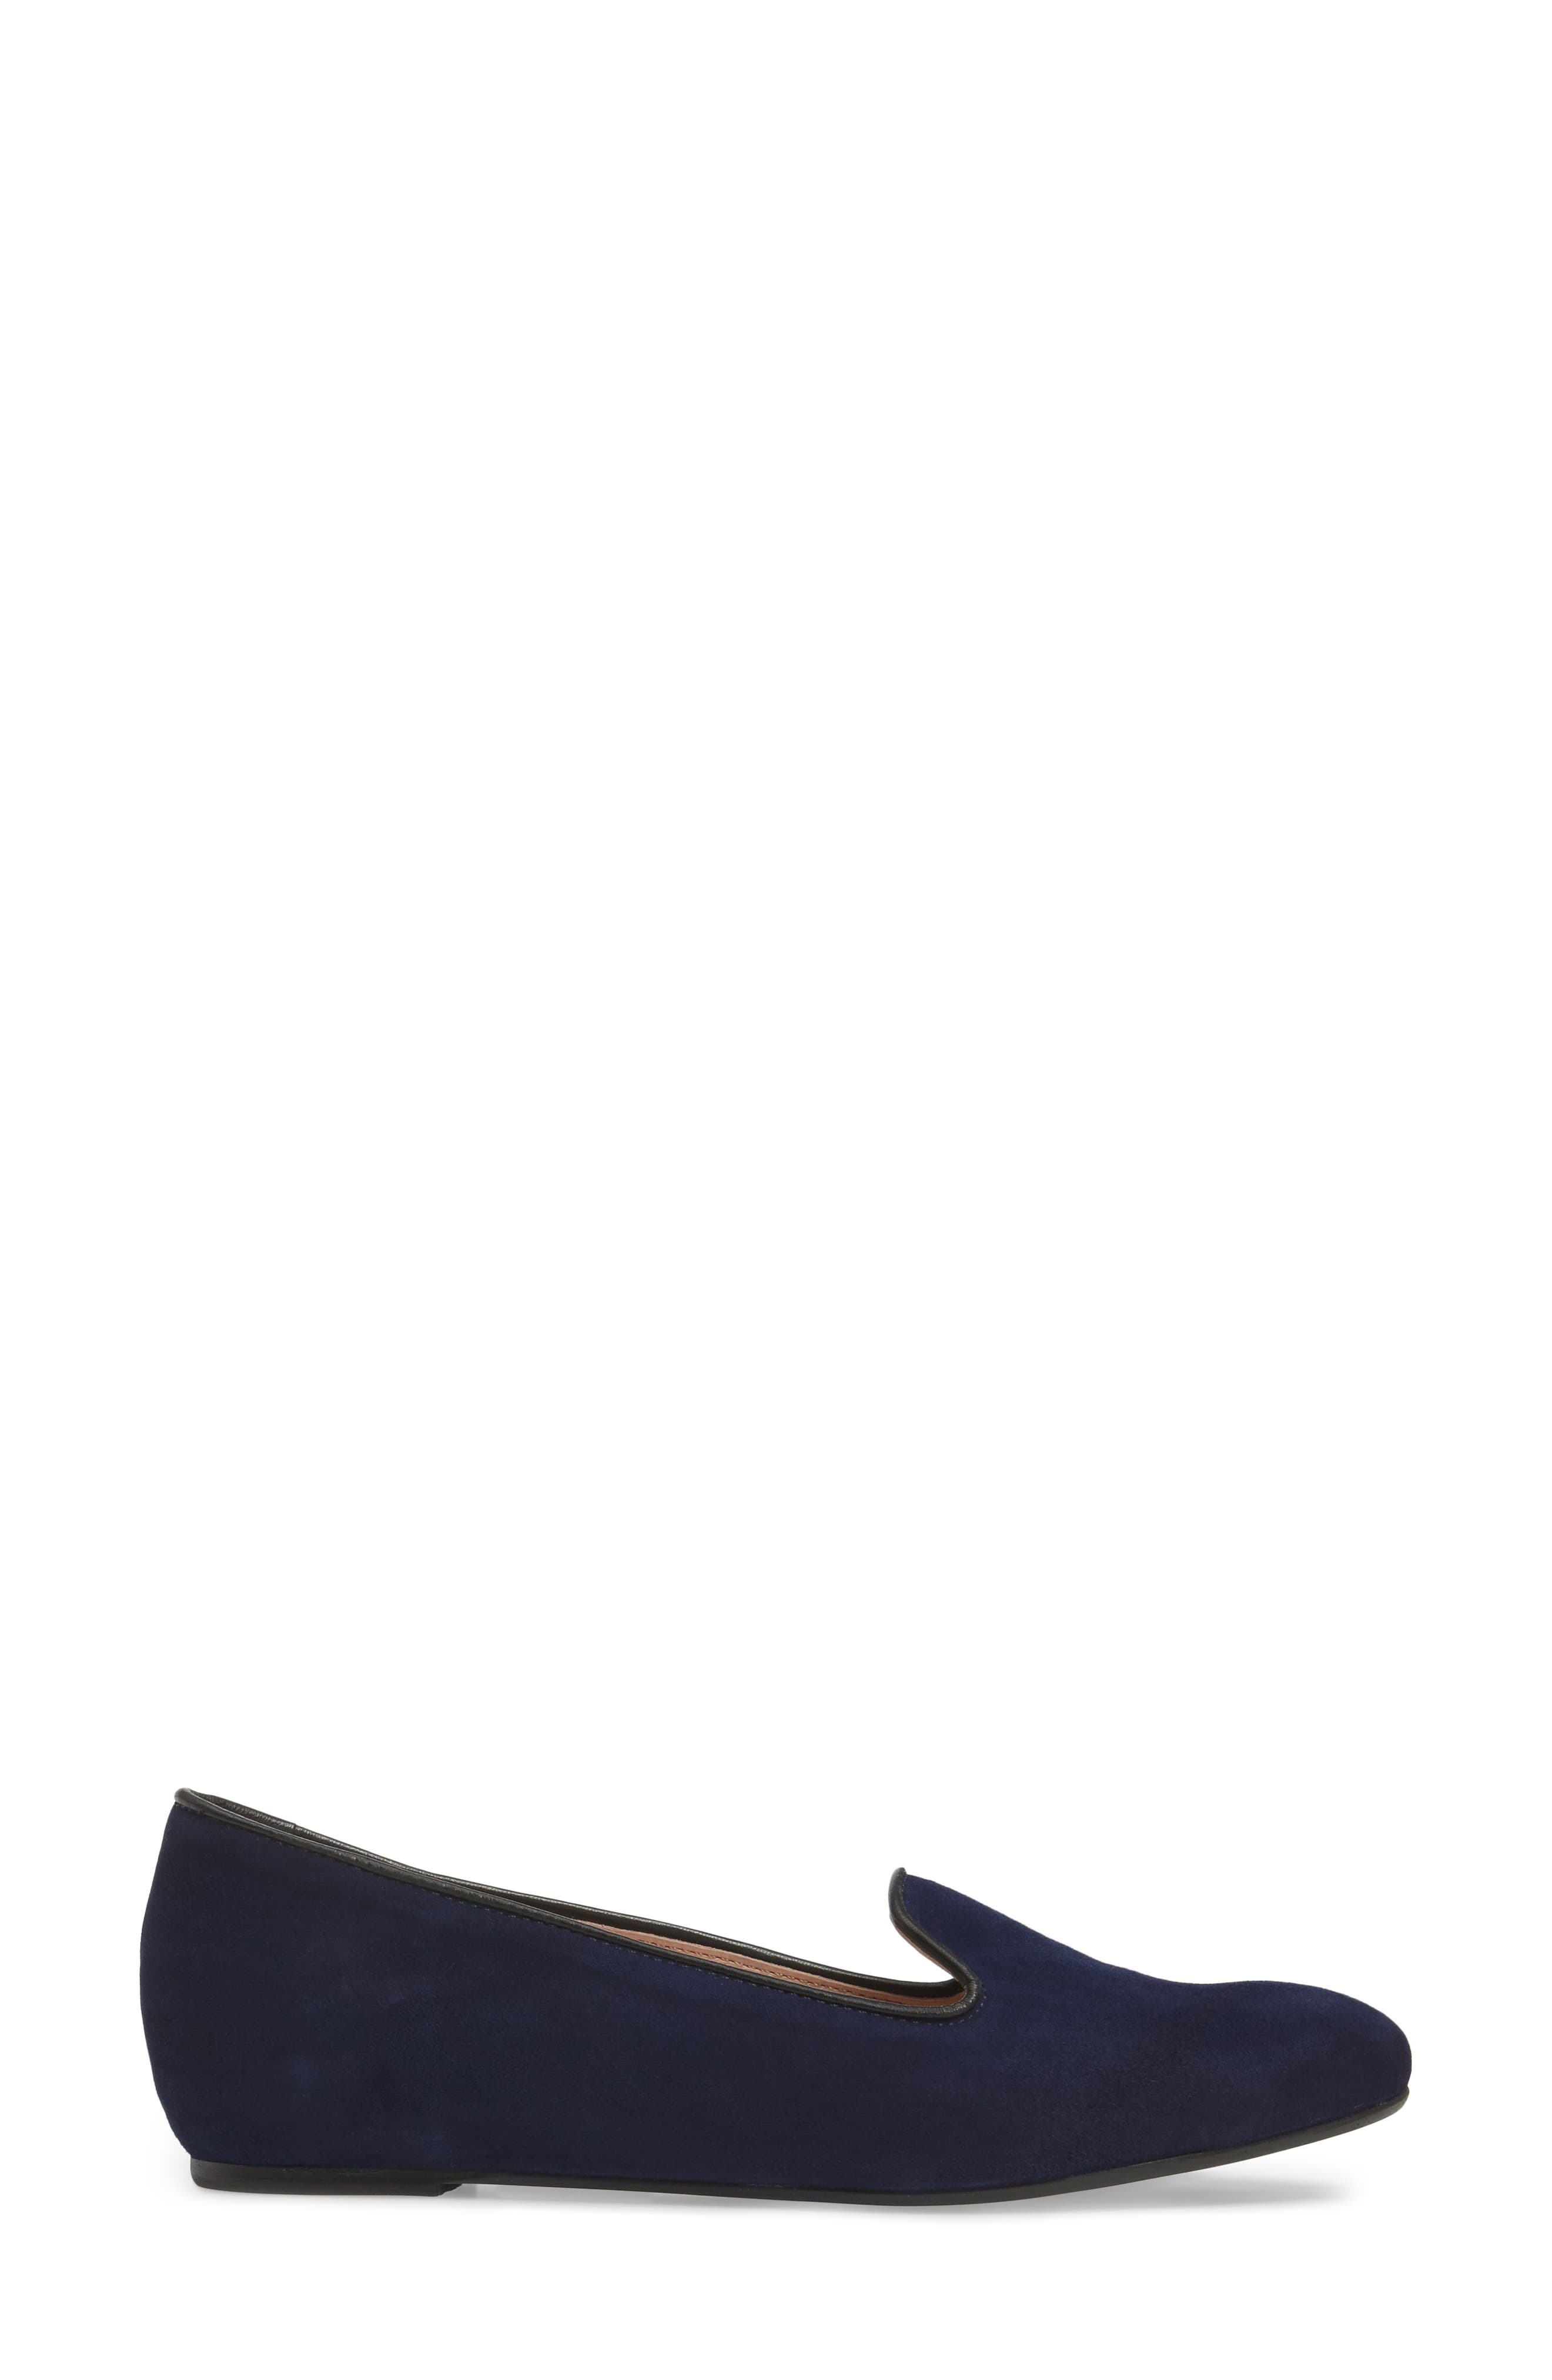 Alternate Image 3  - patricia green Waverly Loafer Flat (Women)